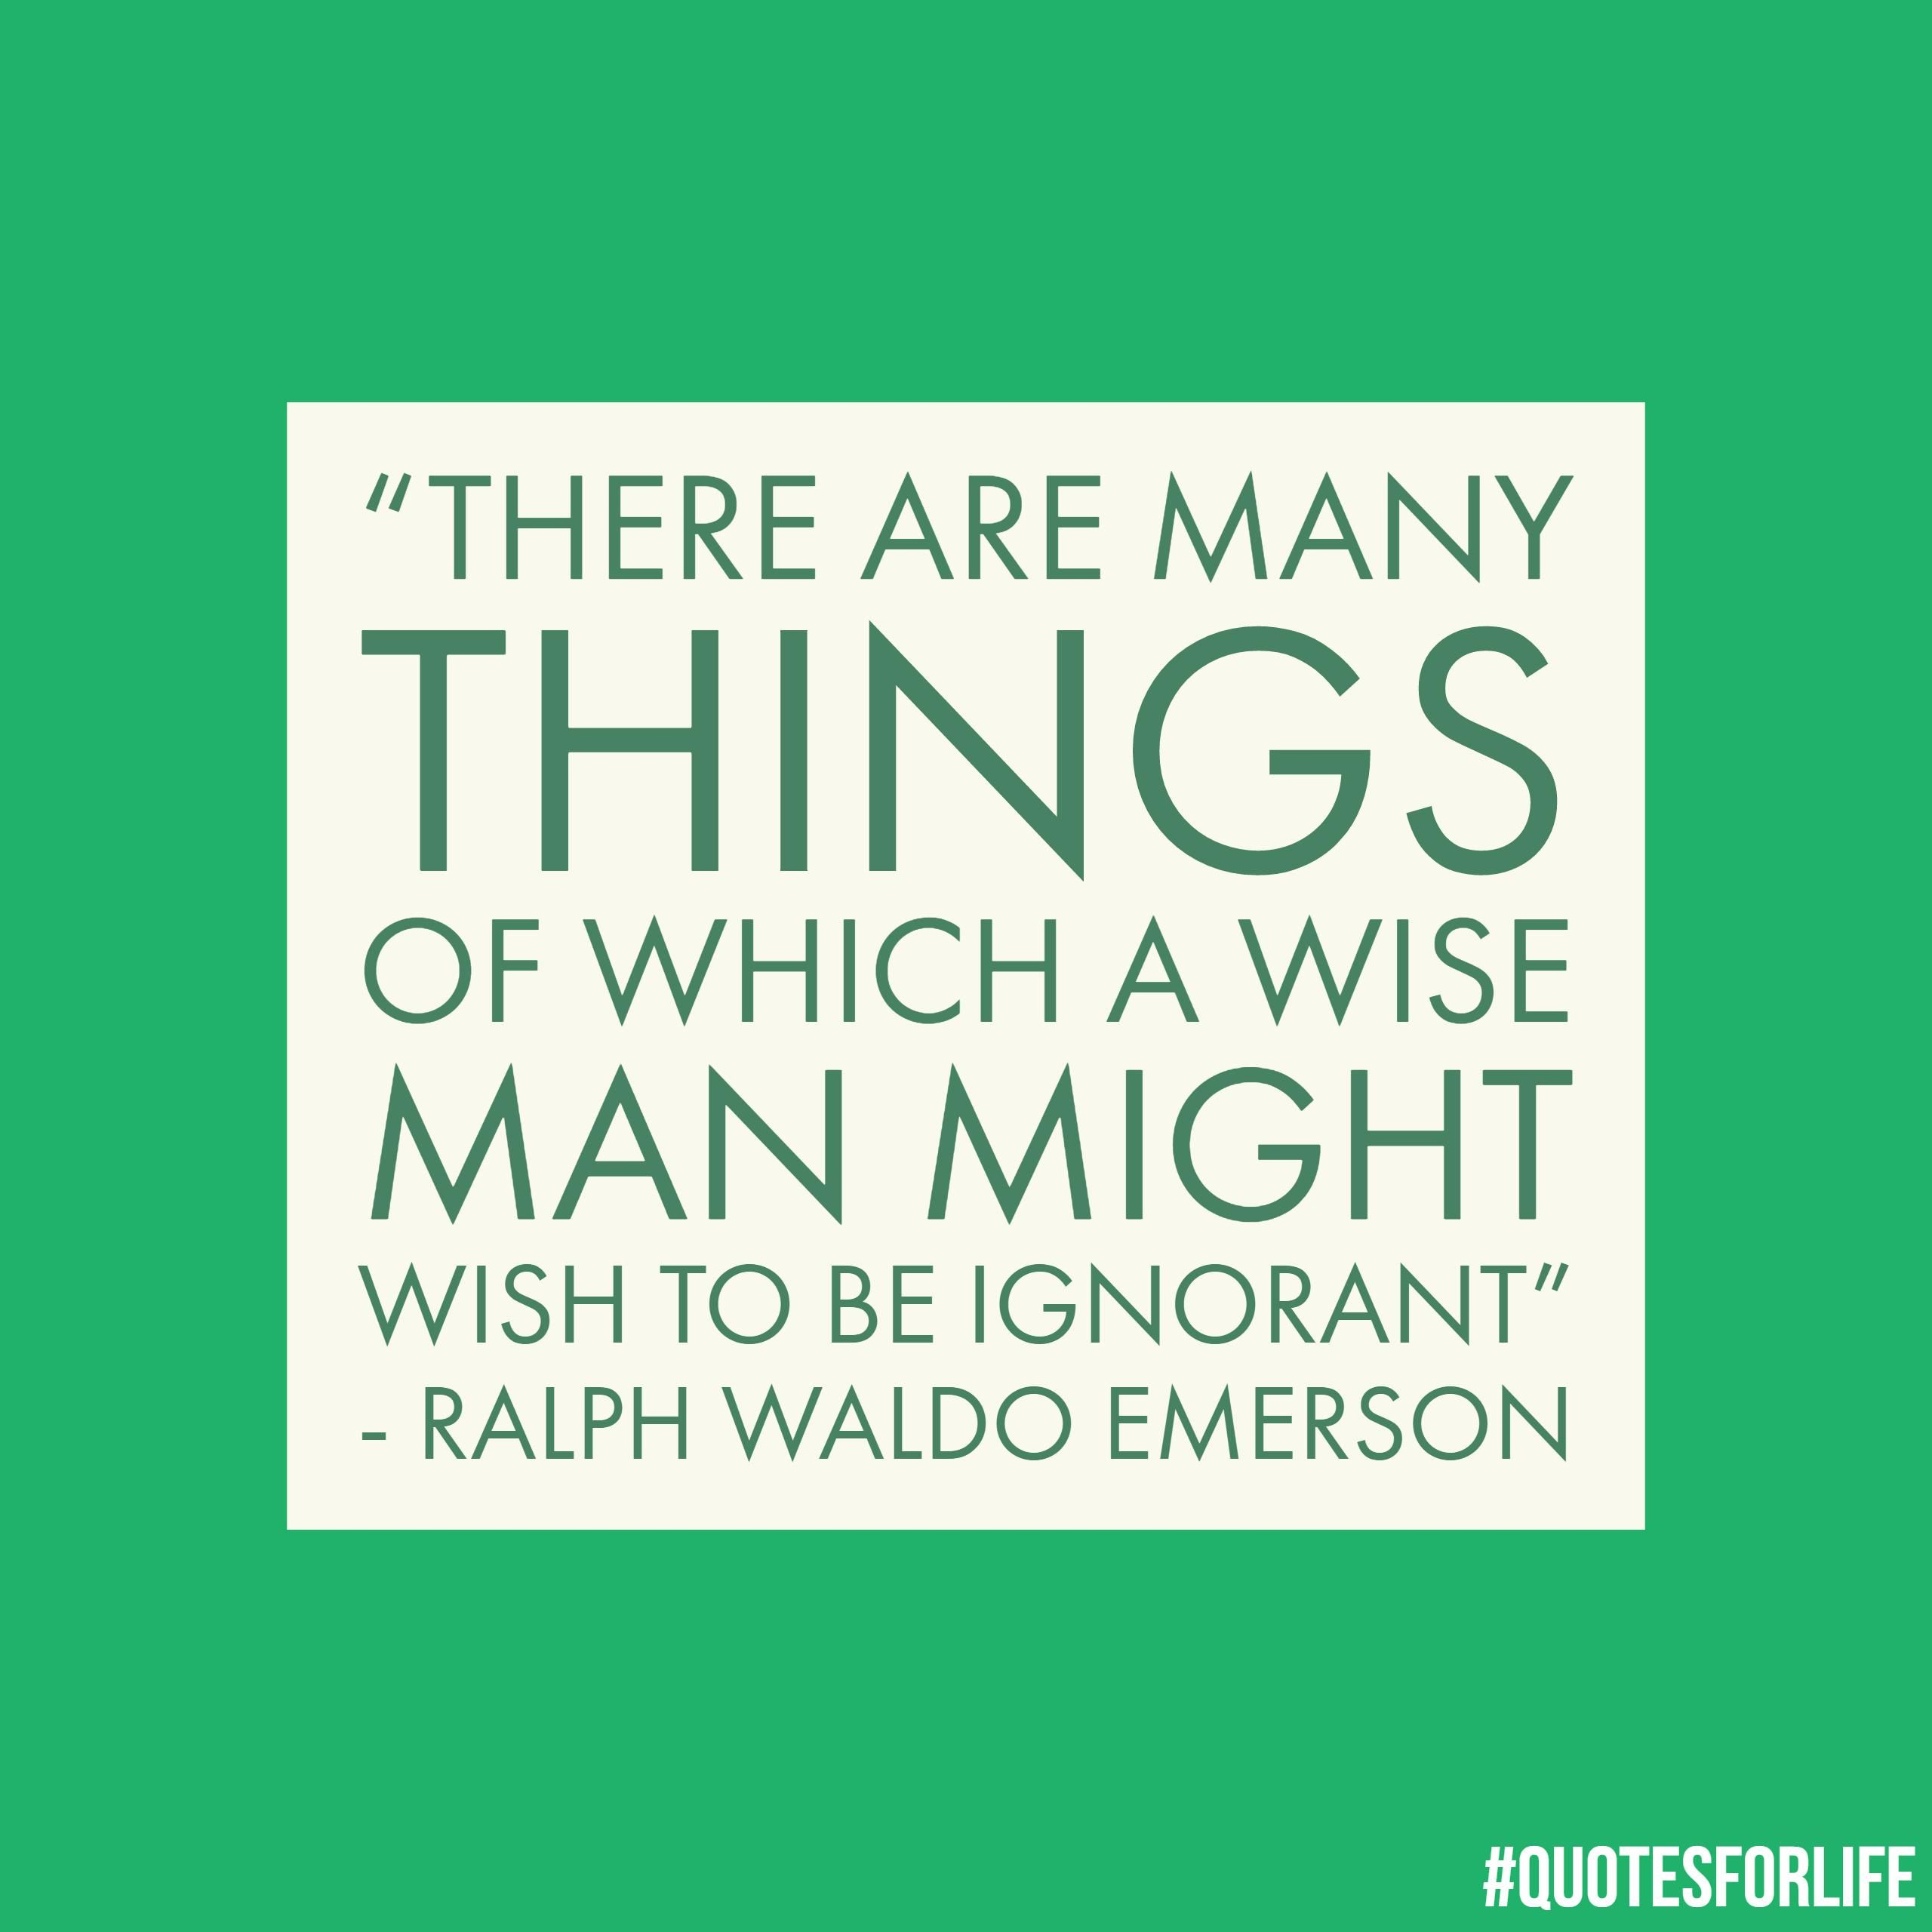 Quotes For Life: There Are Many Things Of Which A Wise Man Might Wish To